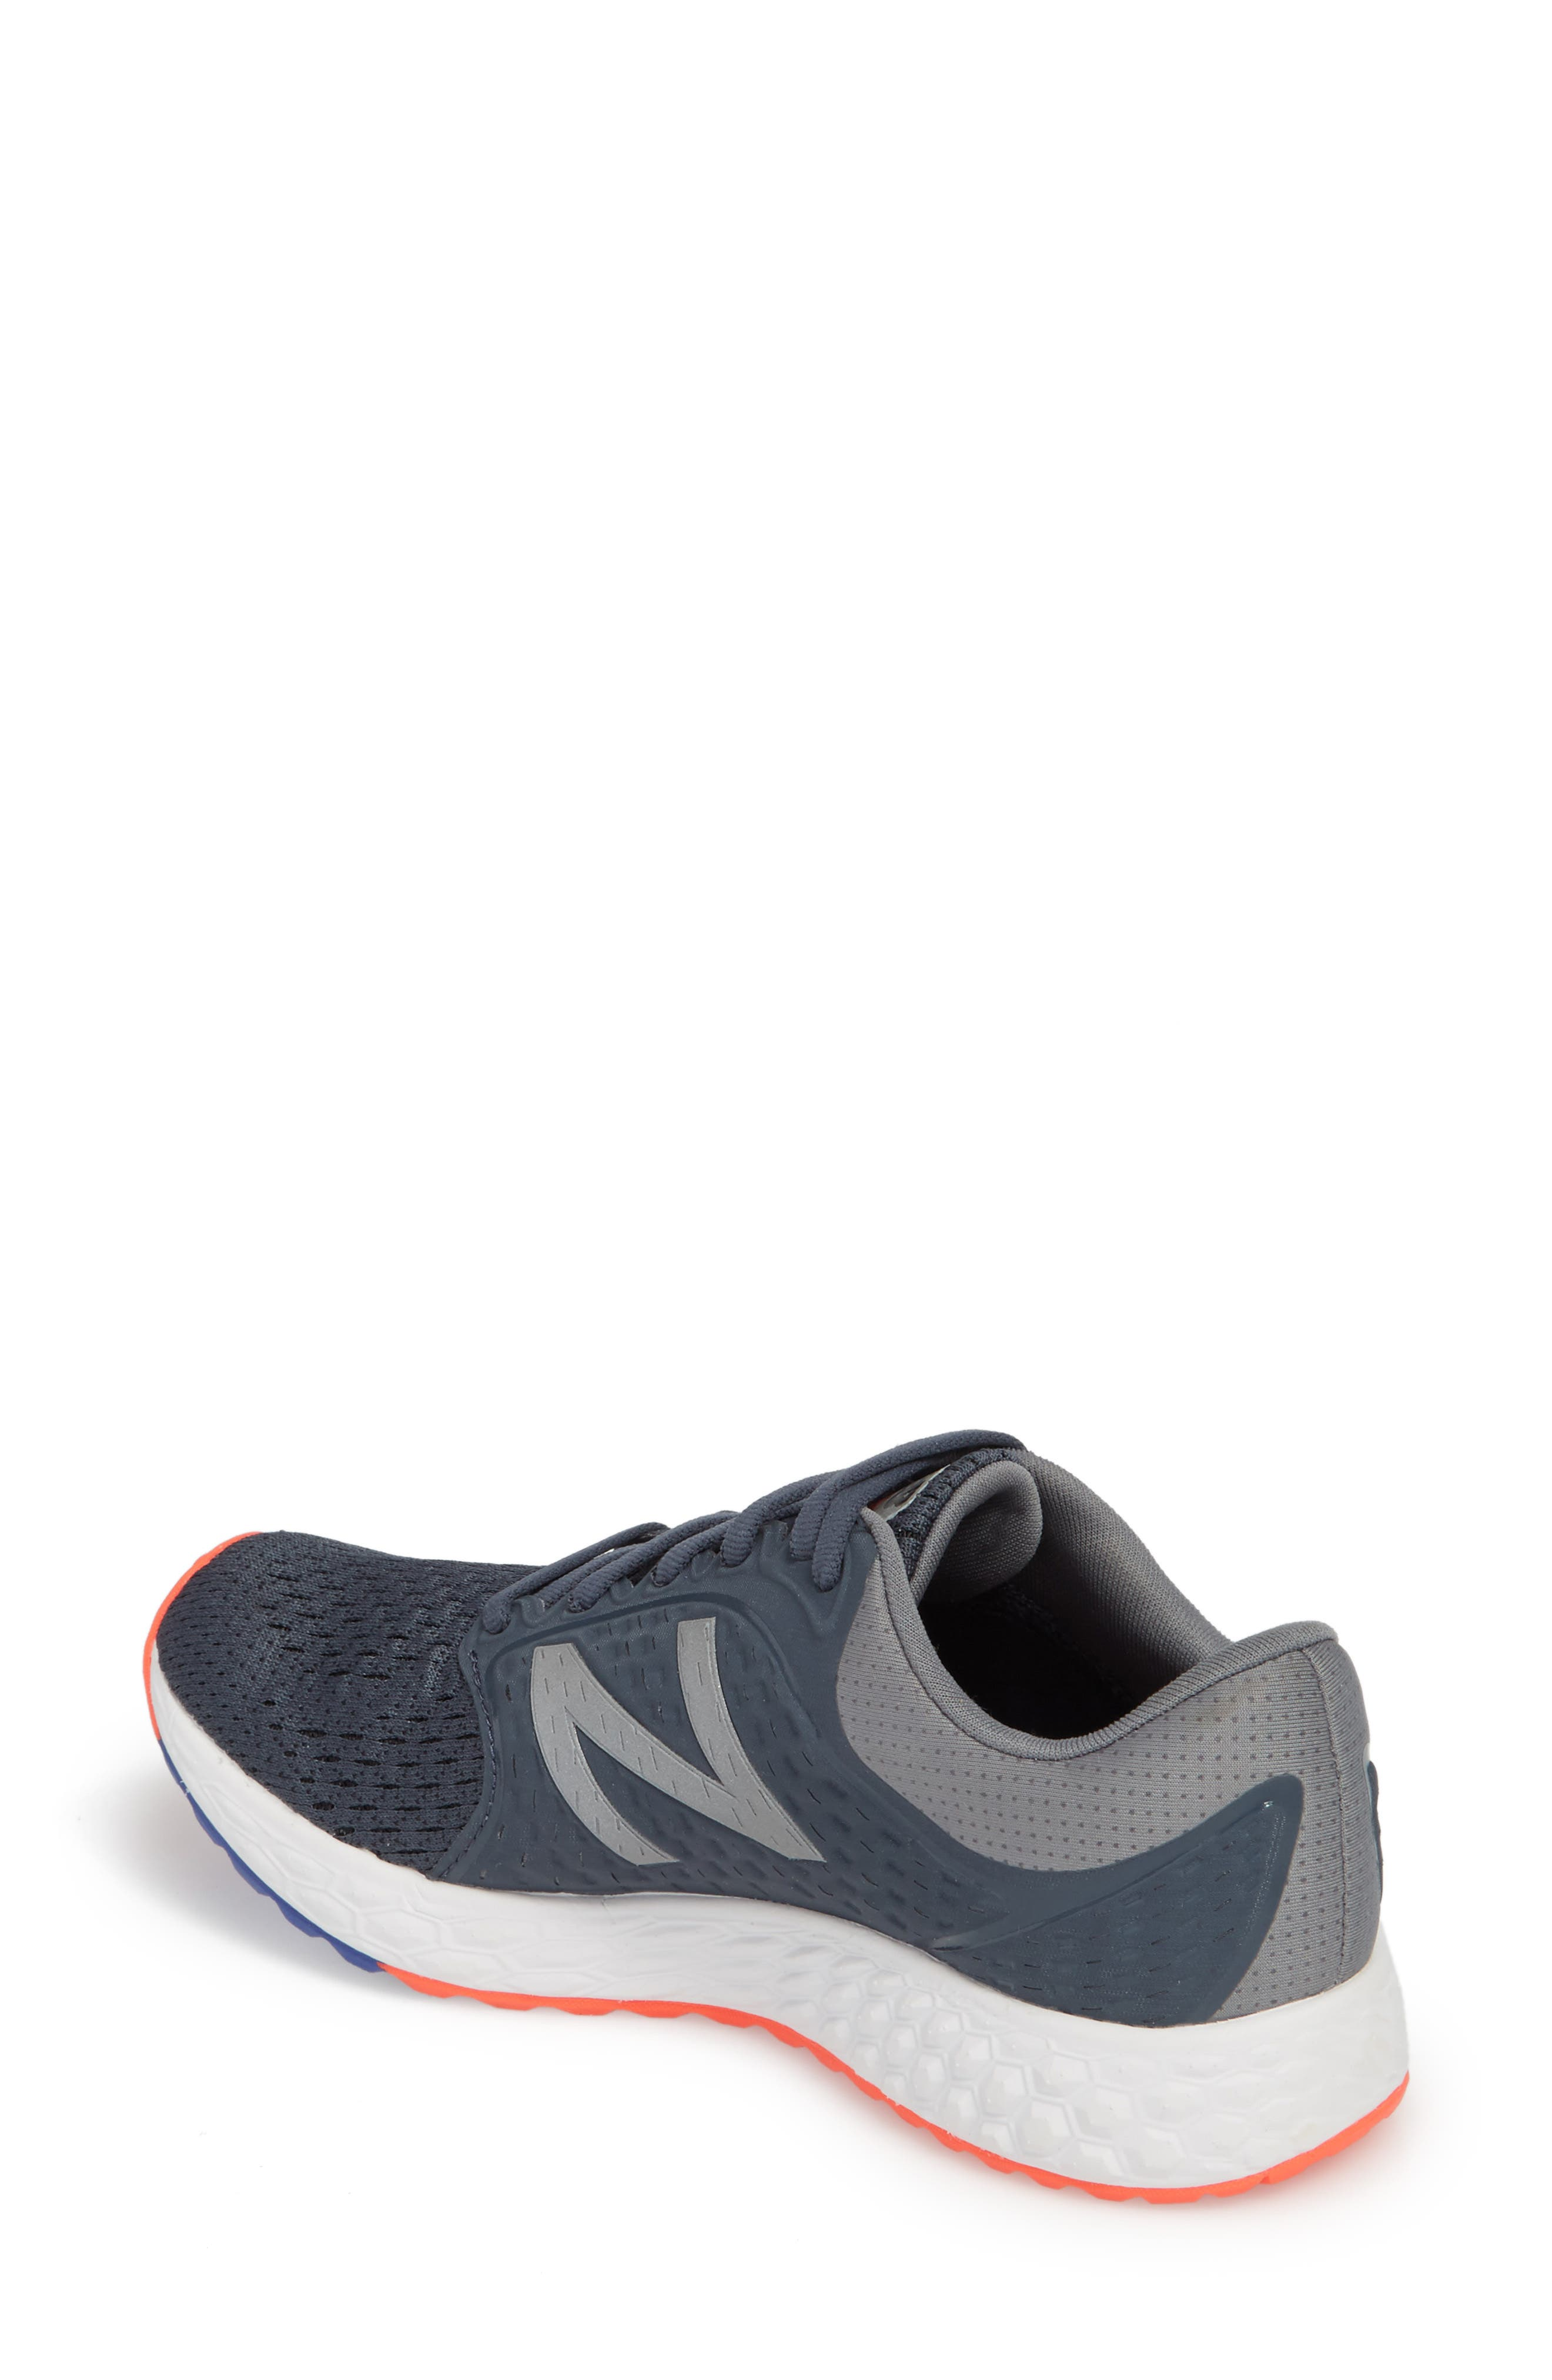 Fresh Foam Zante v4 Running Shoe,                             Alternate thumbnail 2, color,                             050